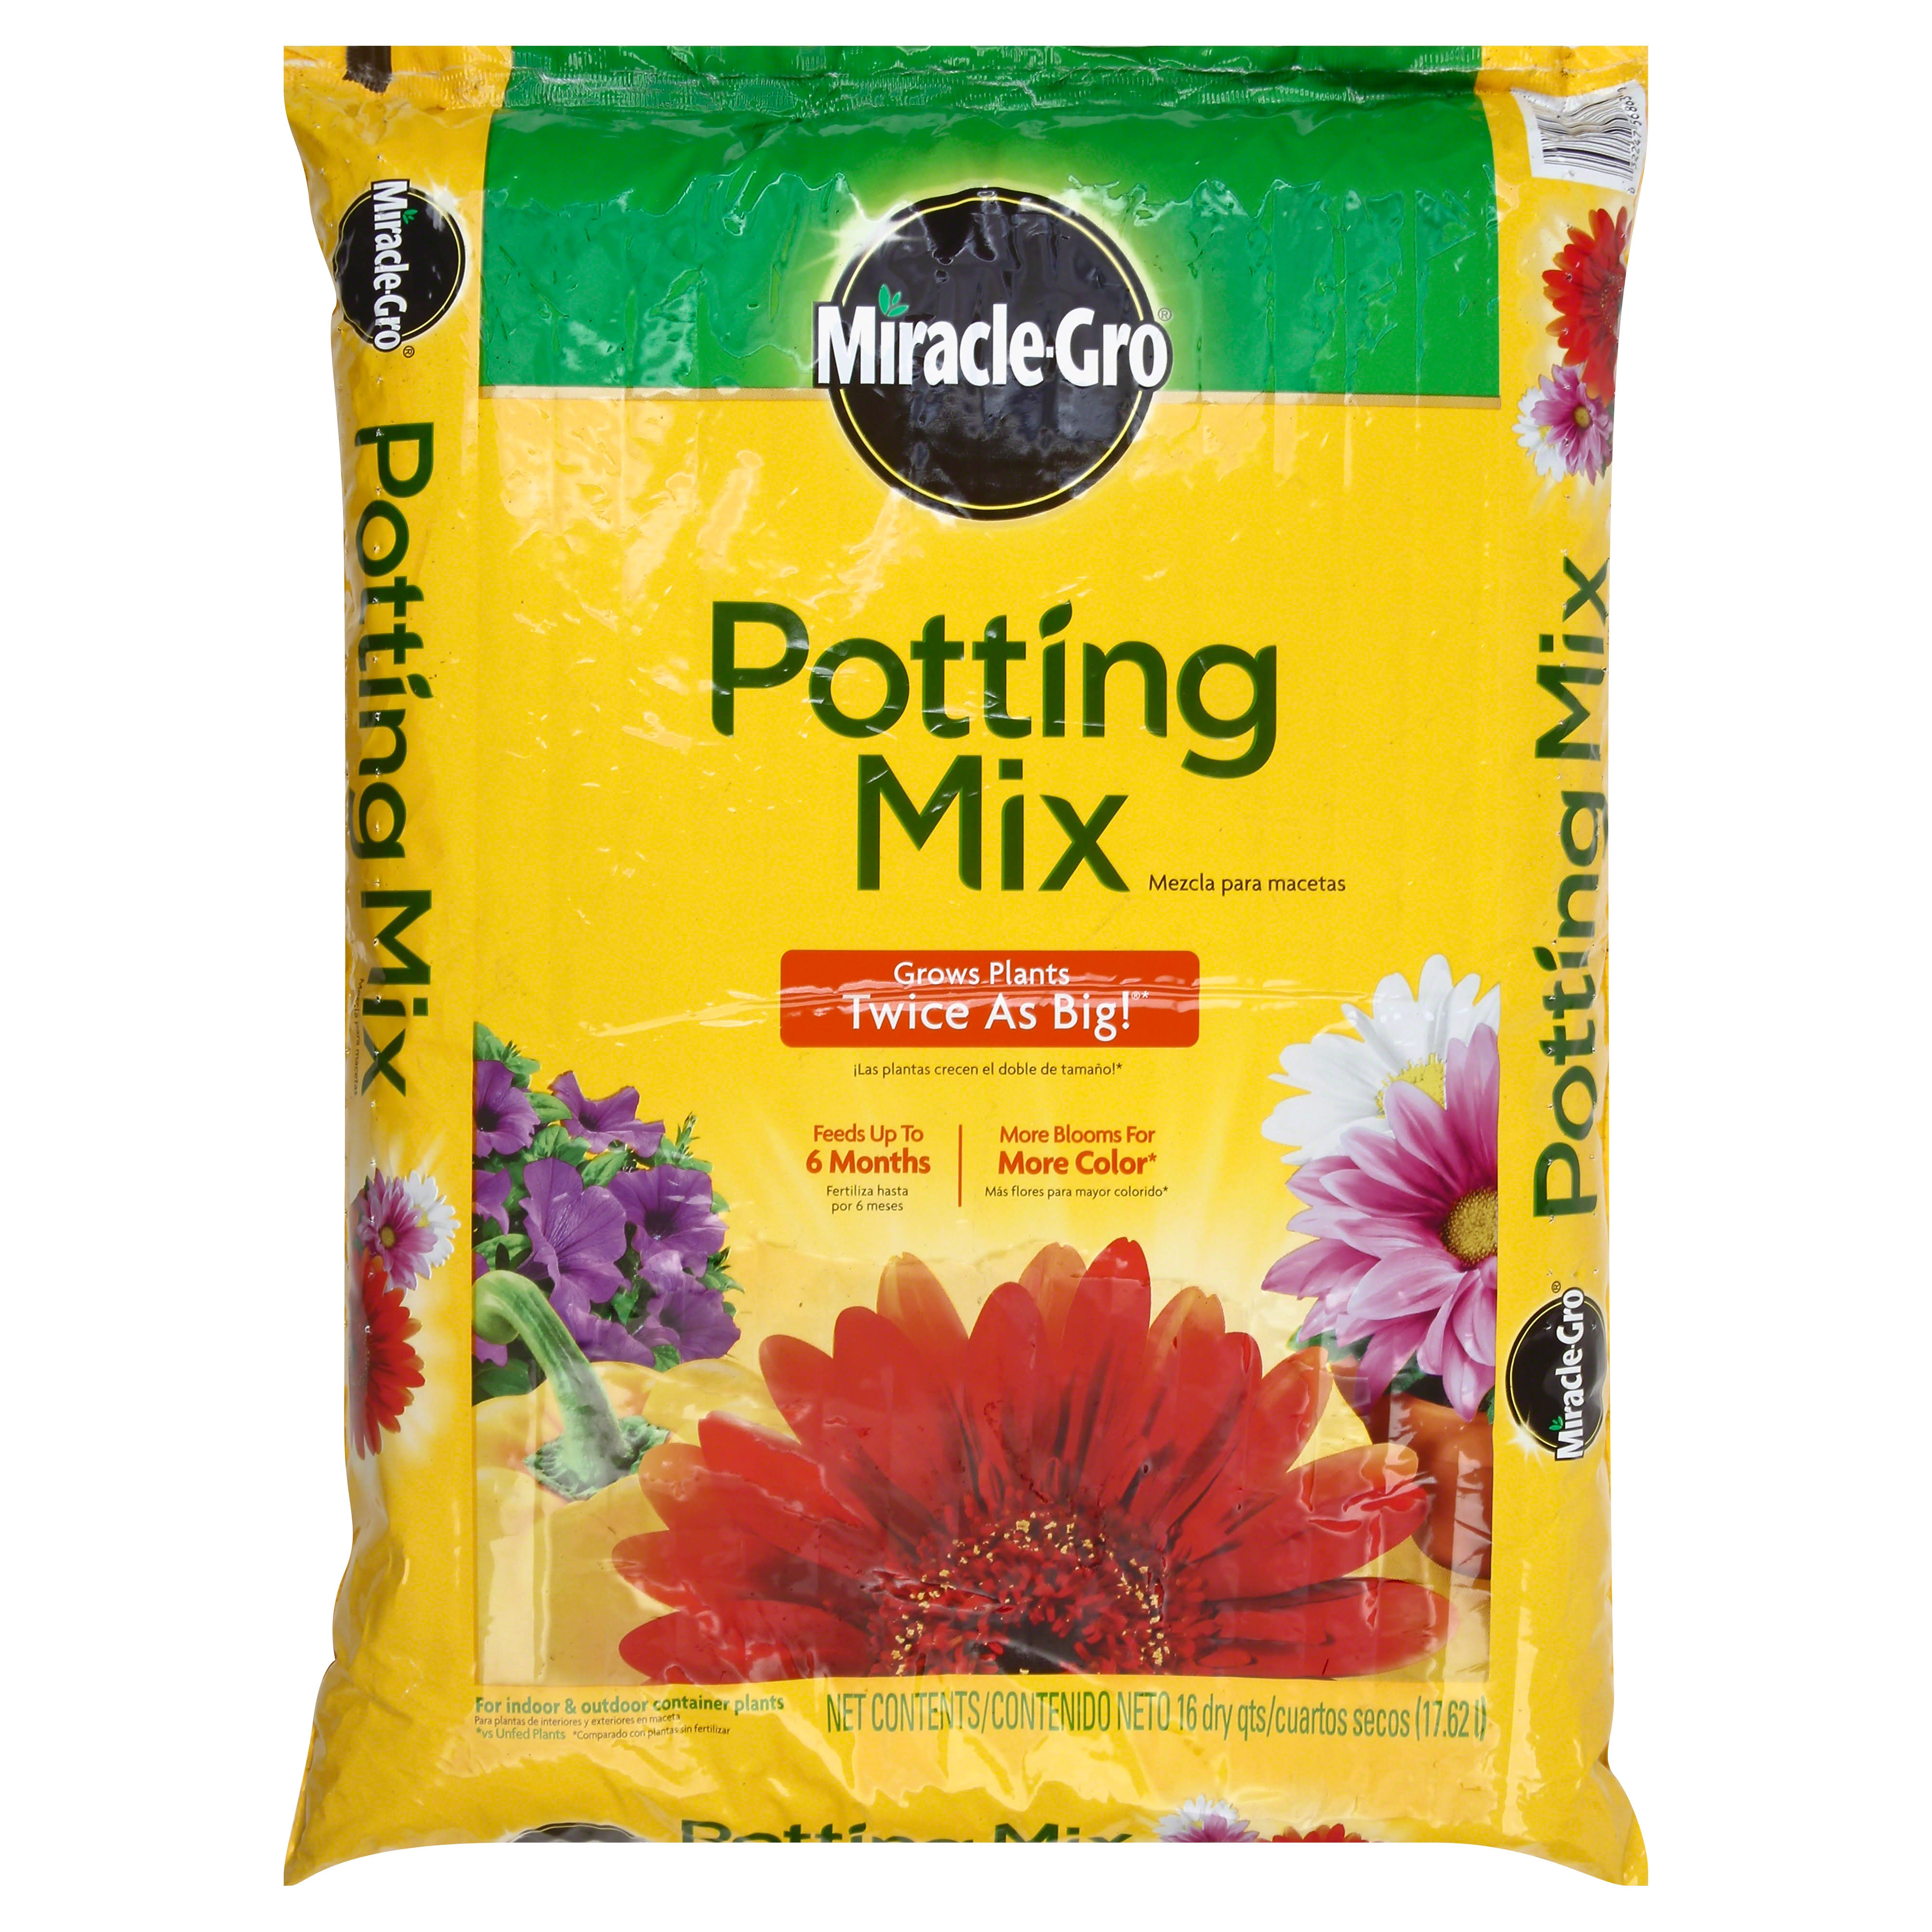 Scotts Lawn Care Miracle Gro Potting Mix